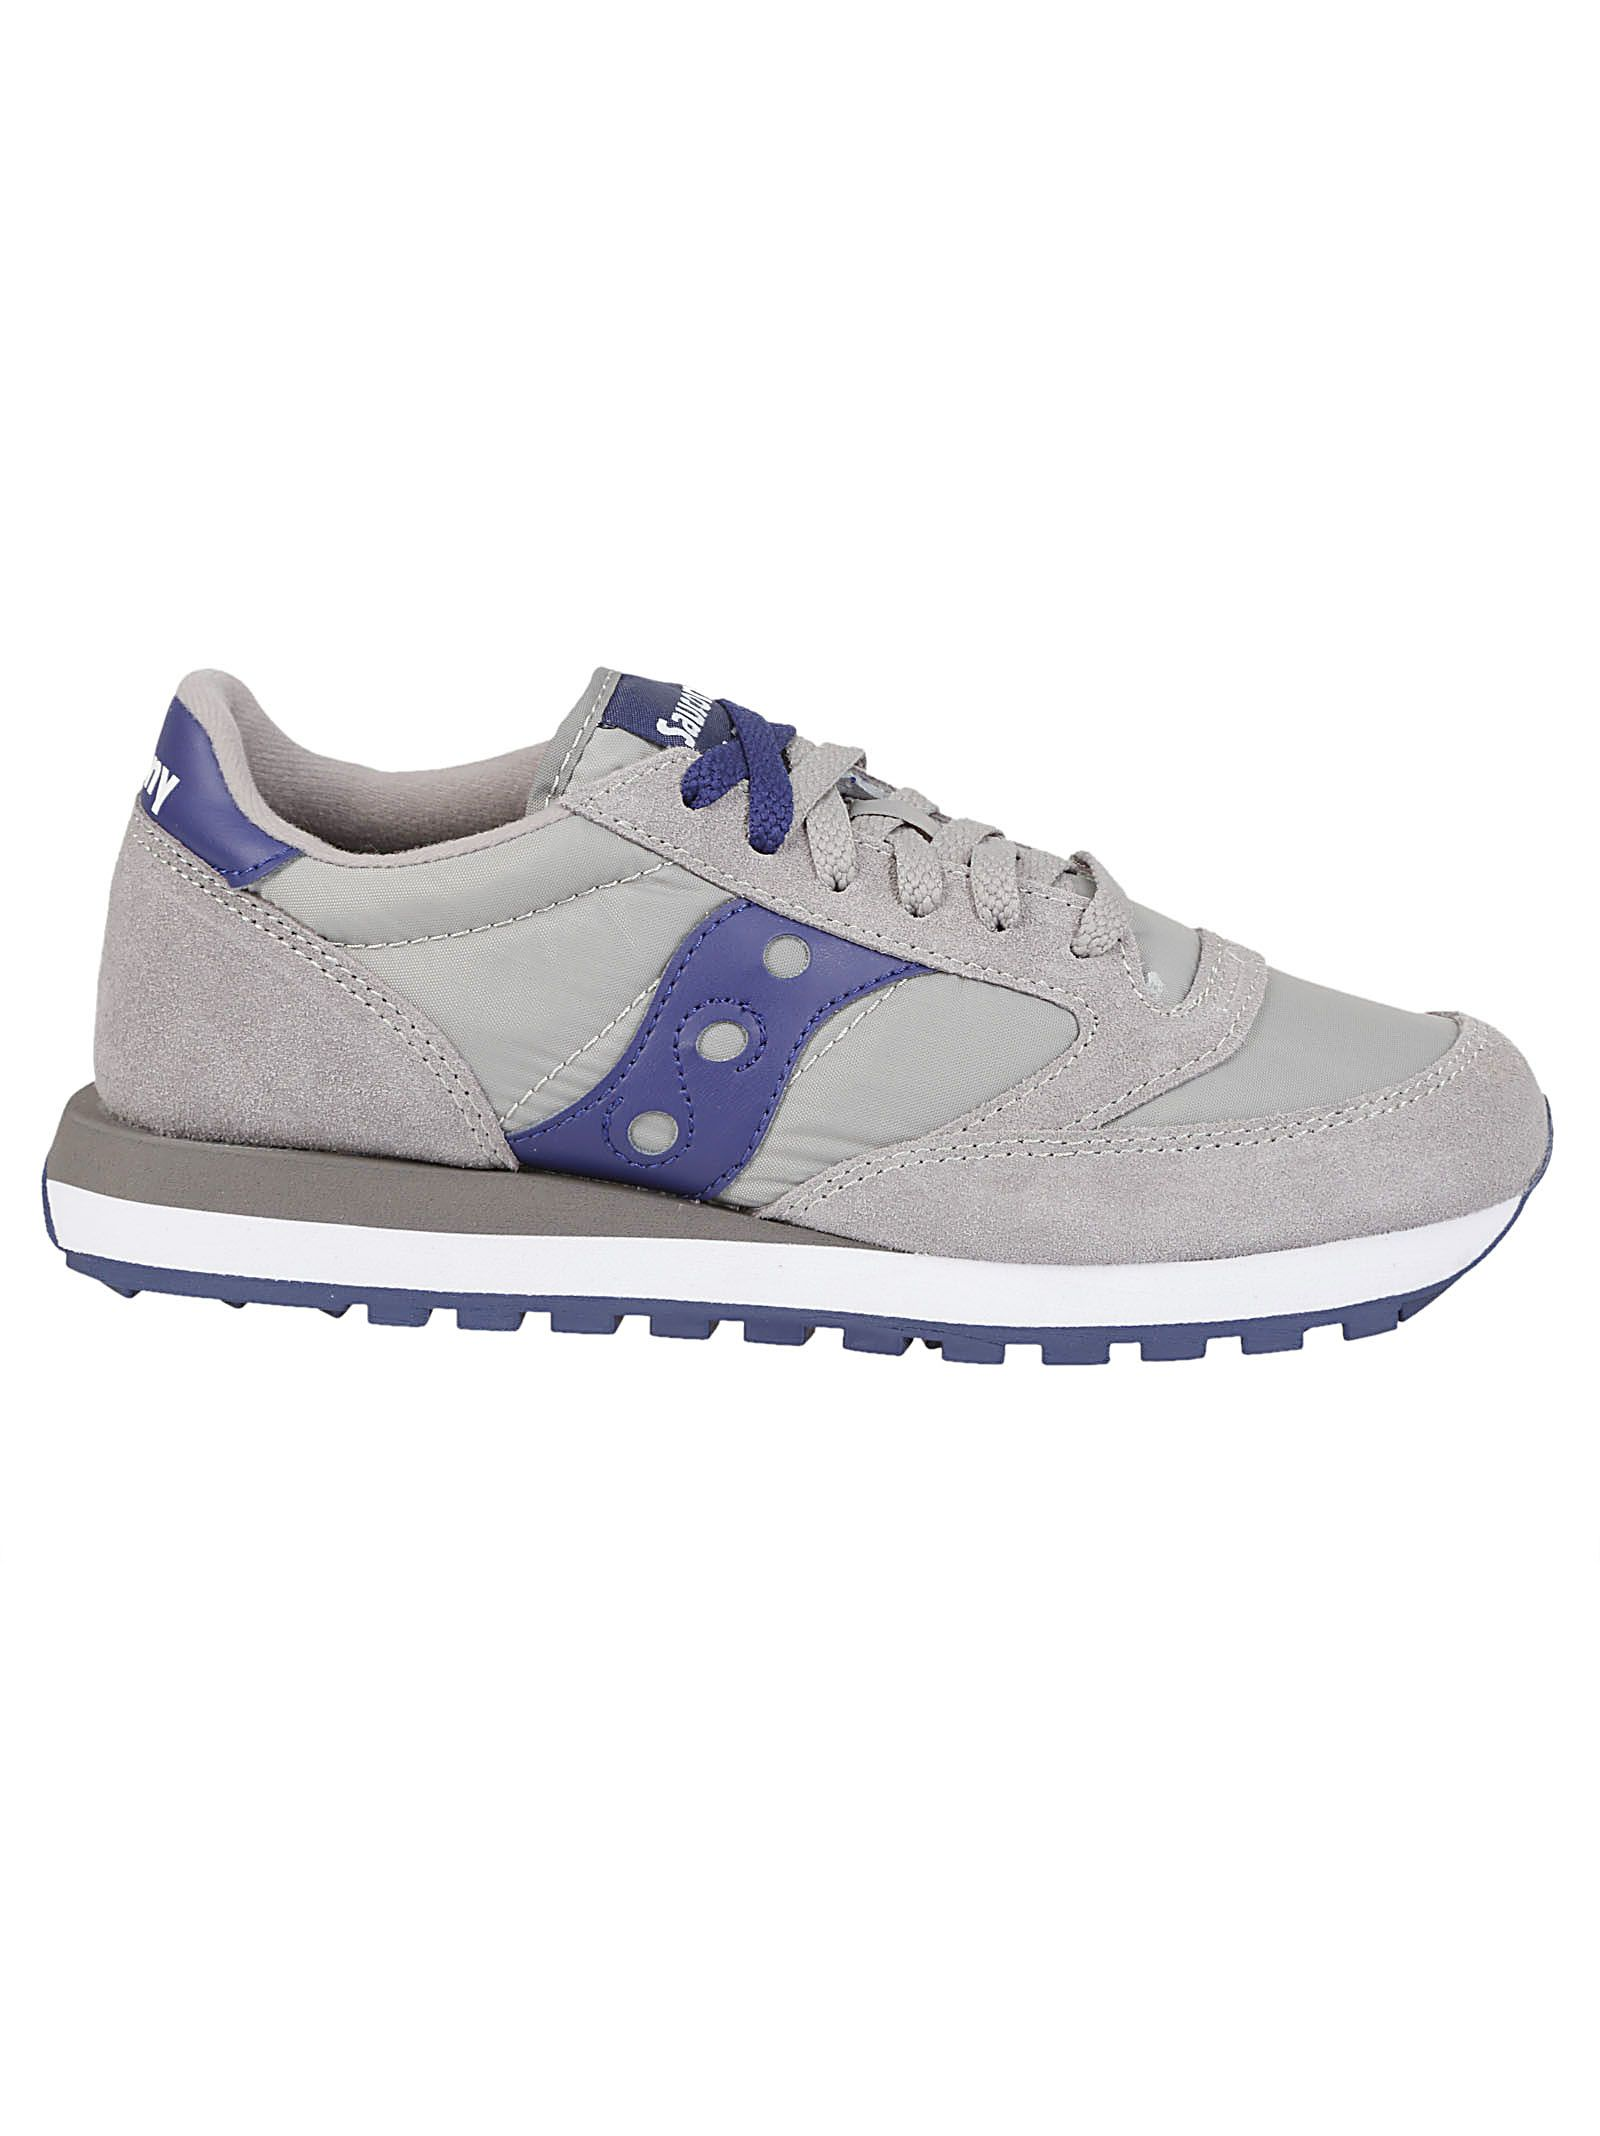 aeb805595f02 Saucony Saucony Lace-up Sneakers - Basic - 10845175